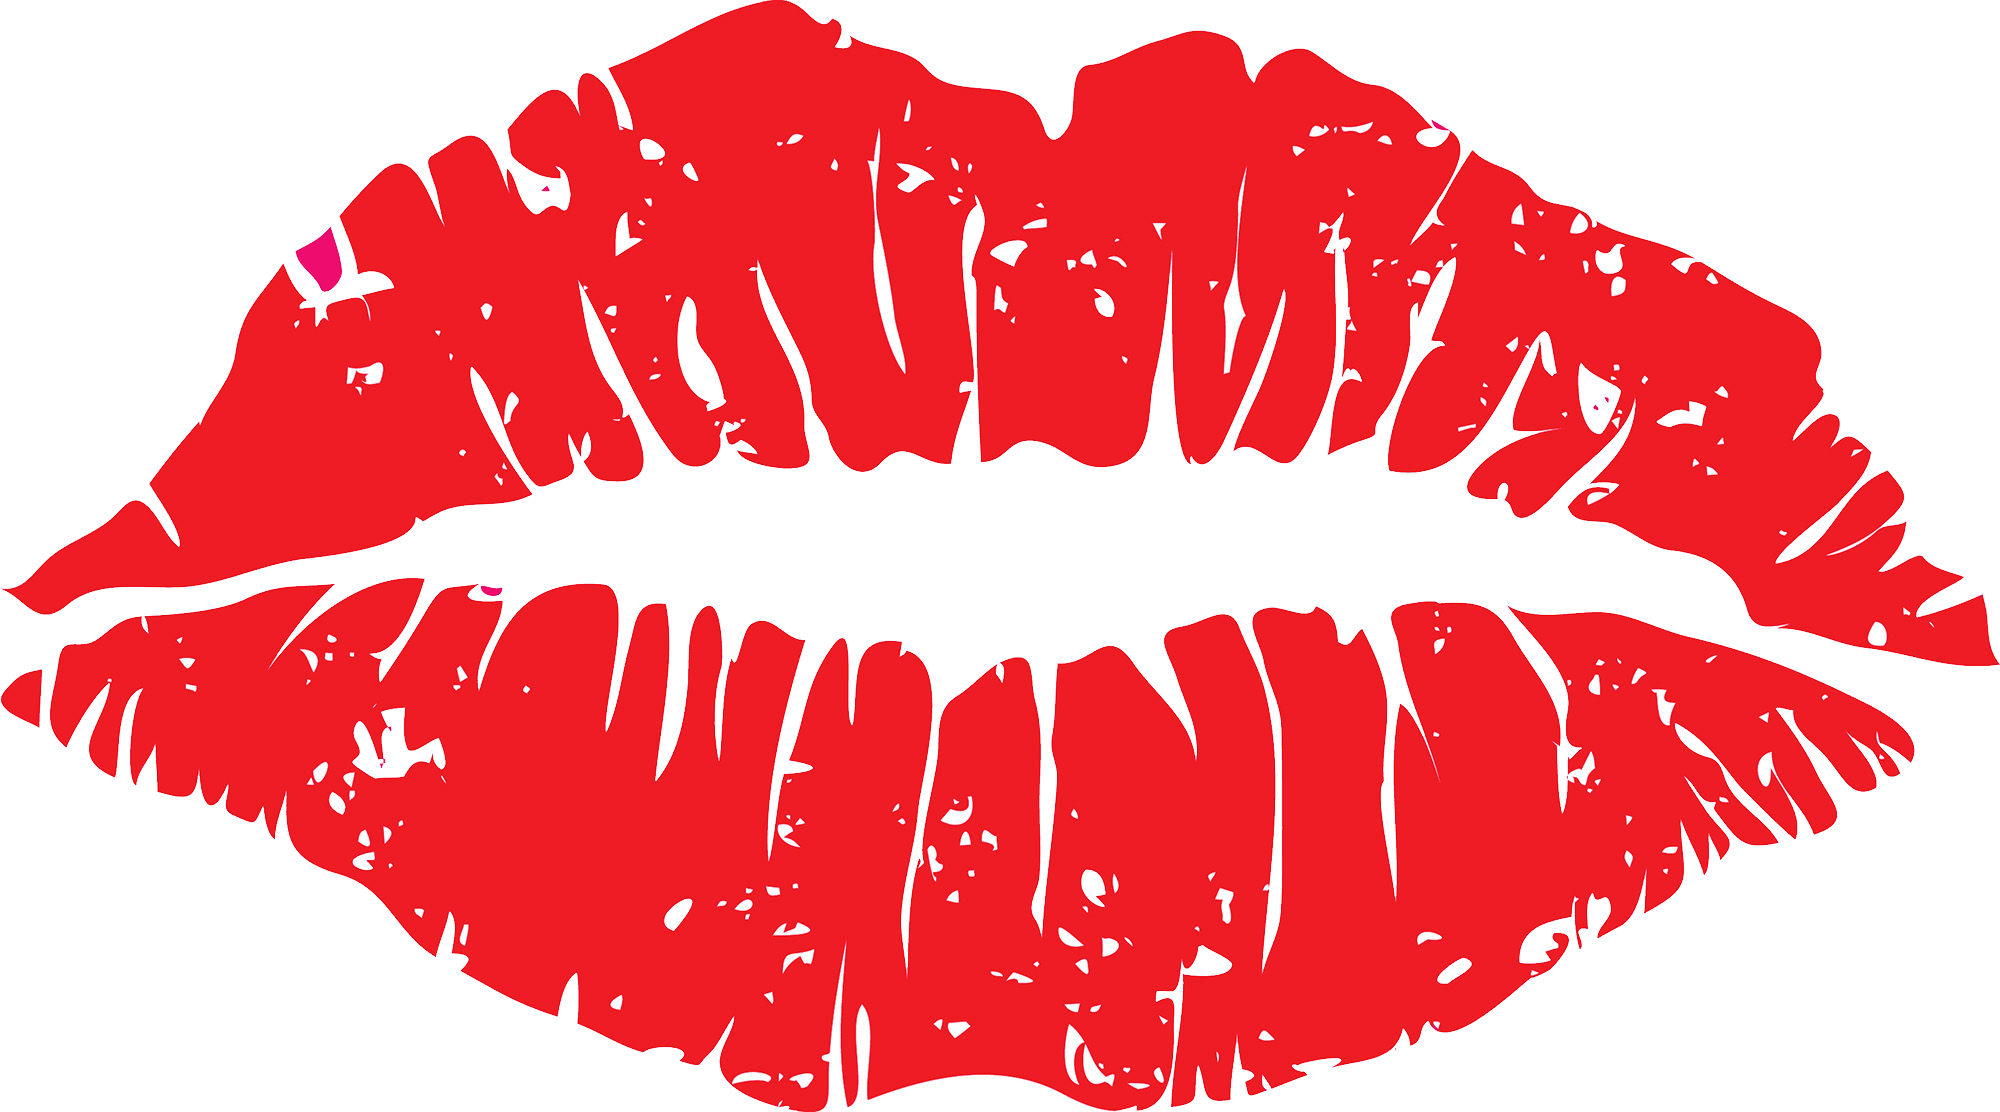 Lips clipart lipstick stain. Kiss png images free